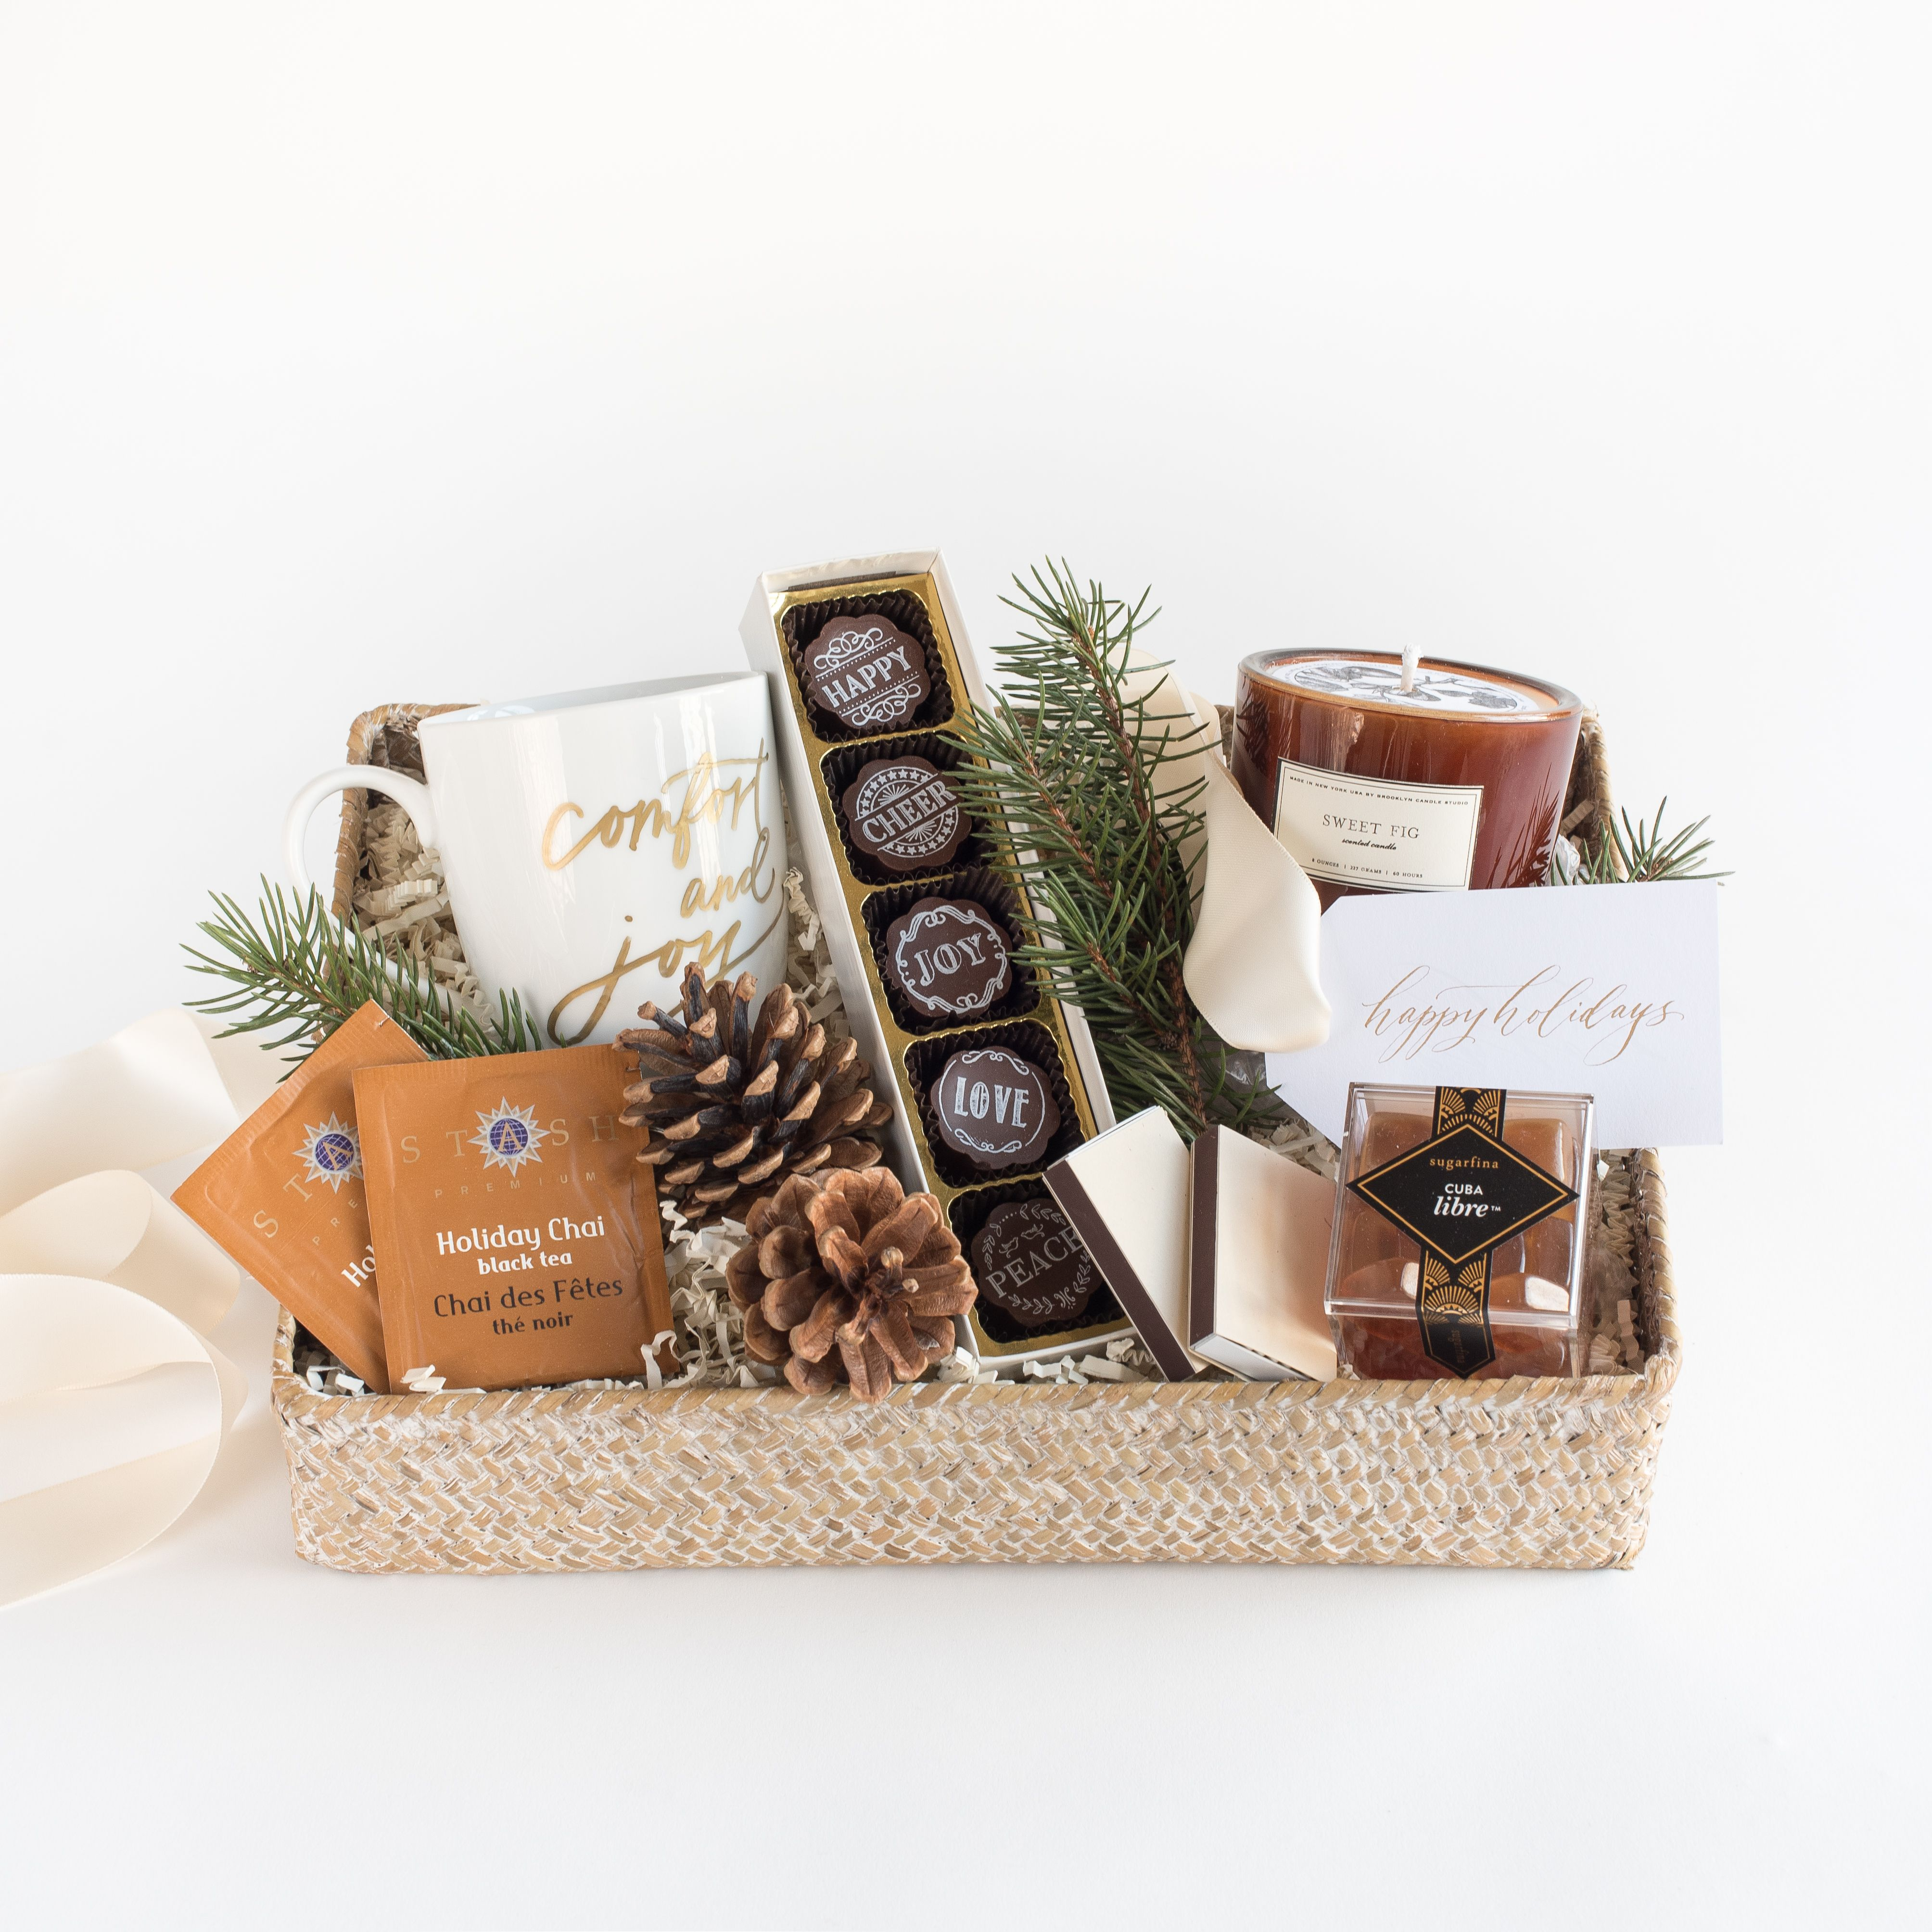 Curated Holiday Gift Box By Marigold Grey The Comfort Joy Is